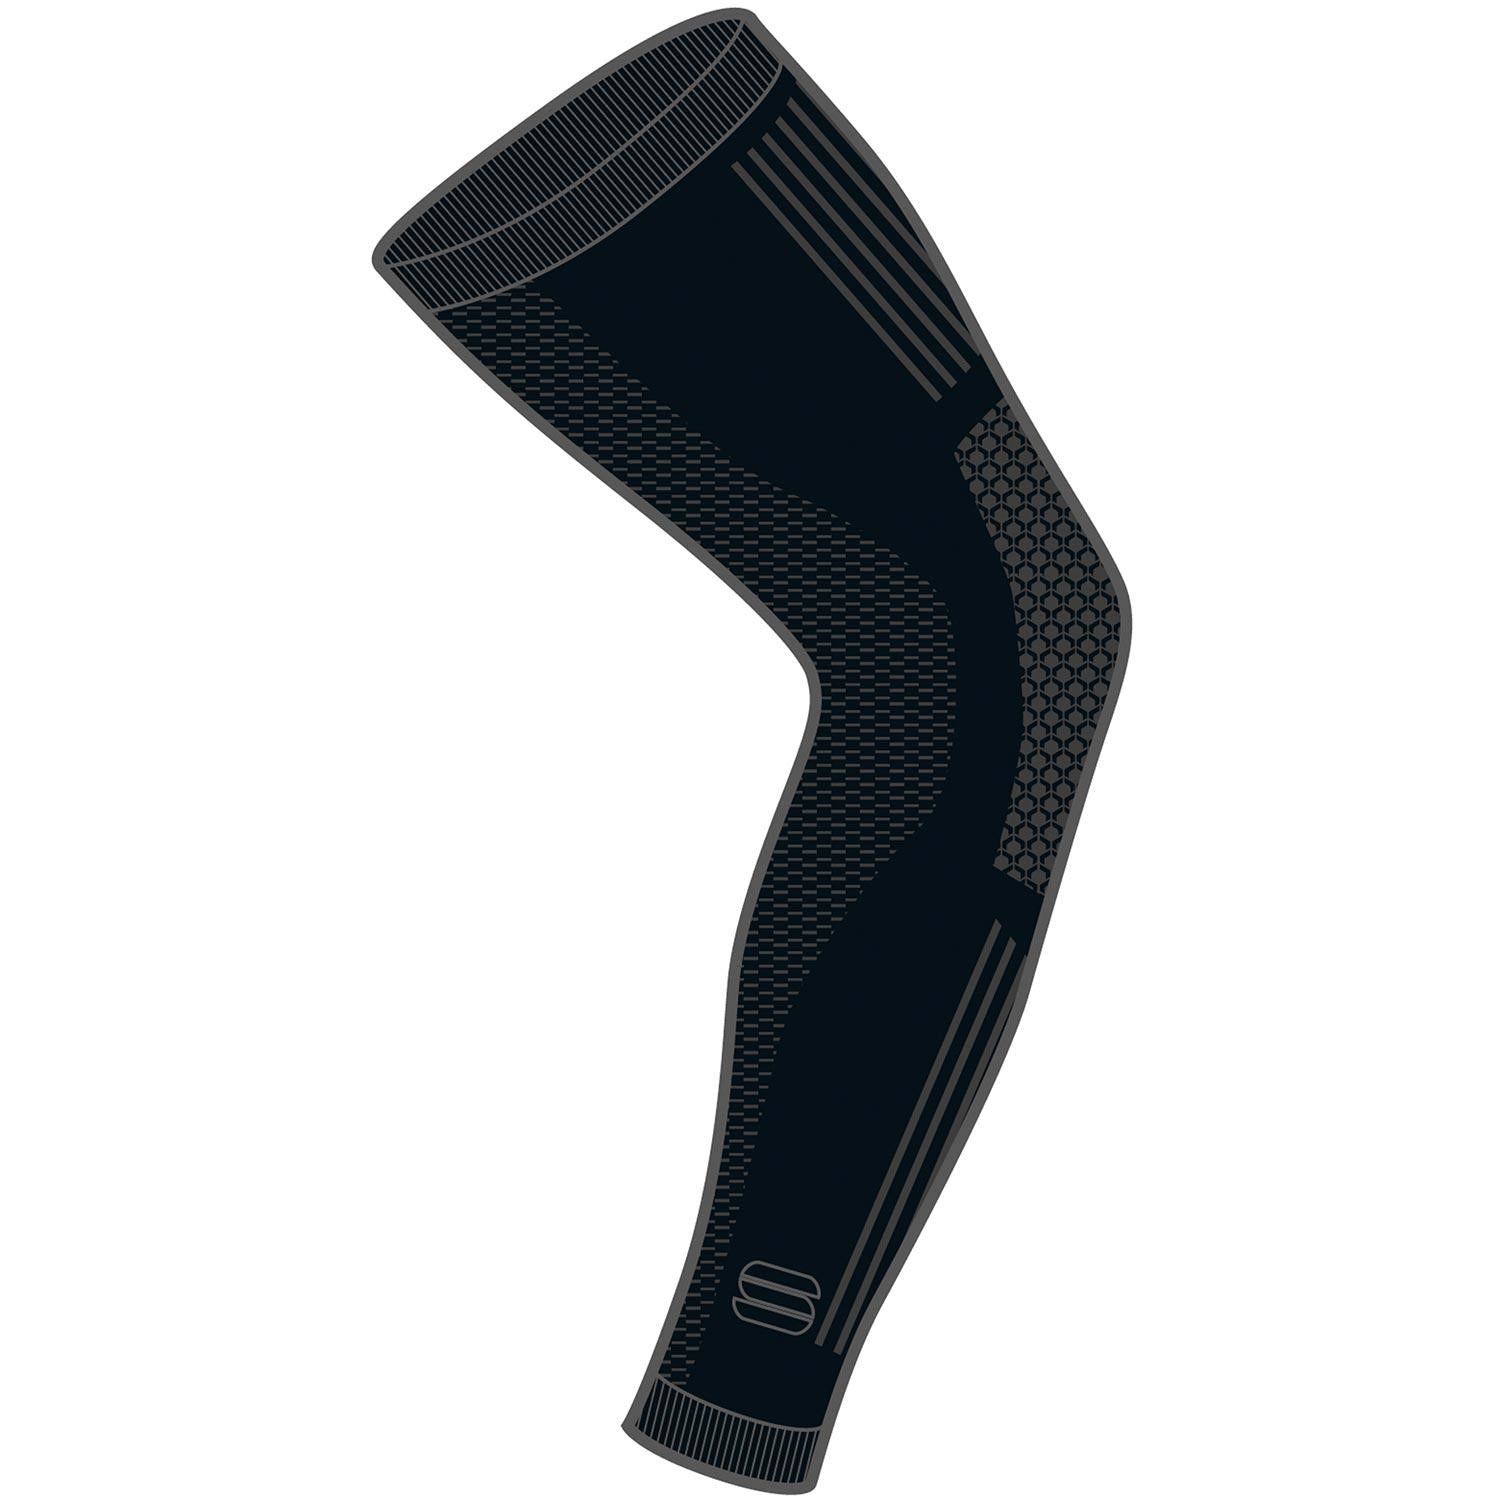 Sportful-Sportful 2nd Skin Leg Warmers-Black-S/M-SF0179600209-saddleback-elite-performance-cycling